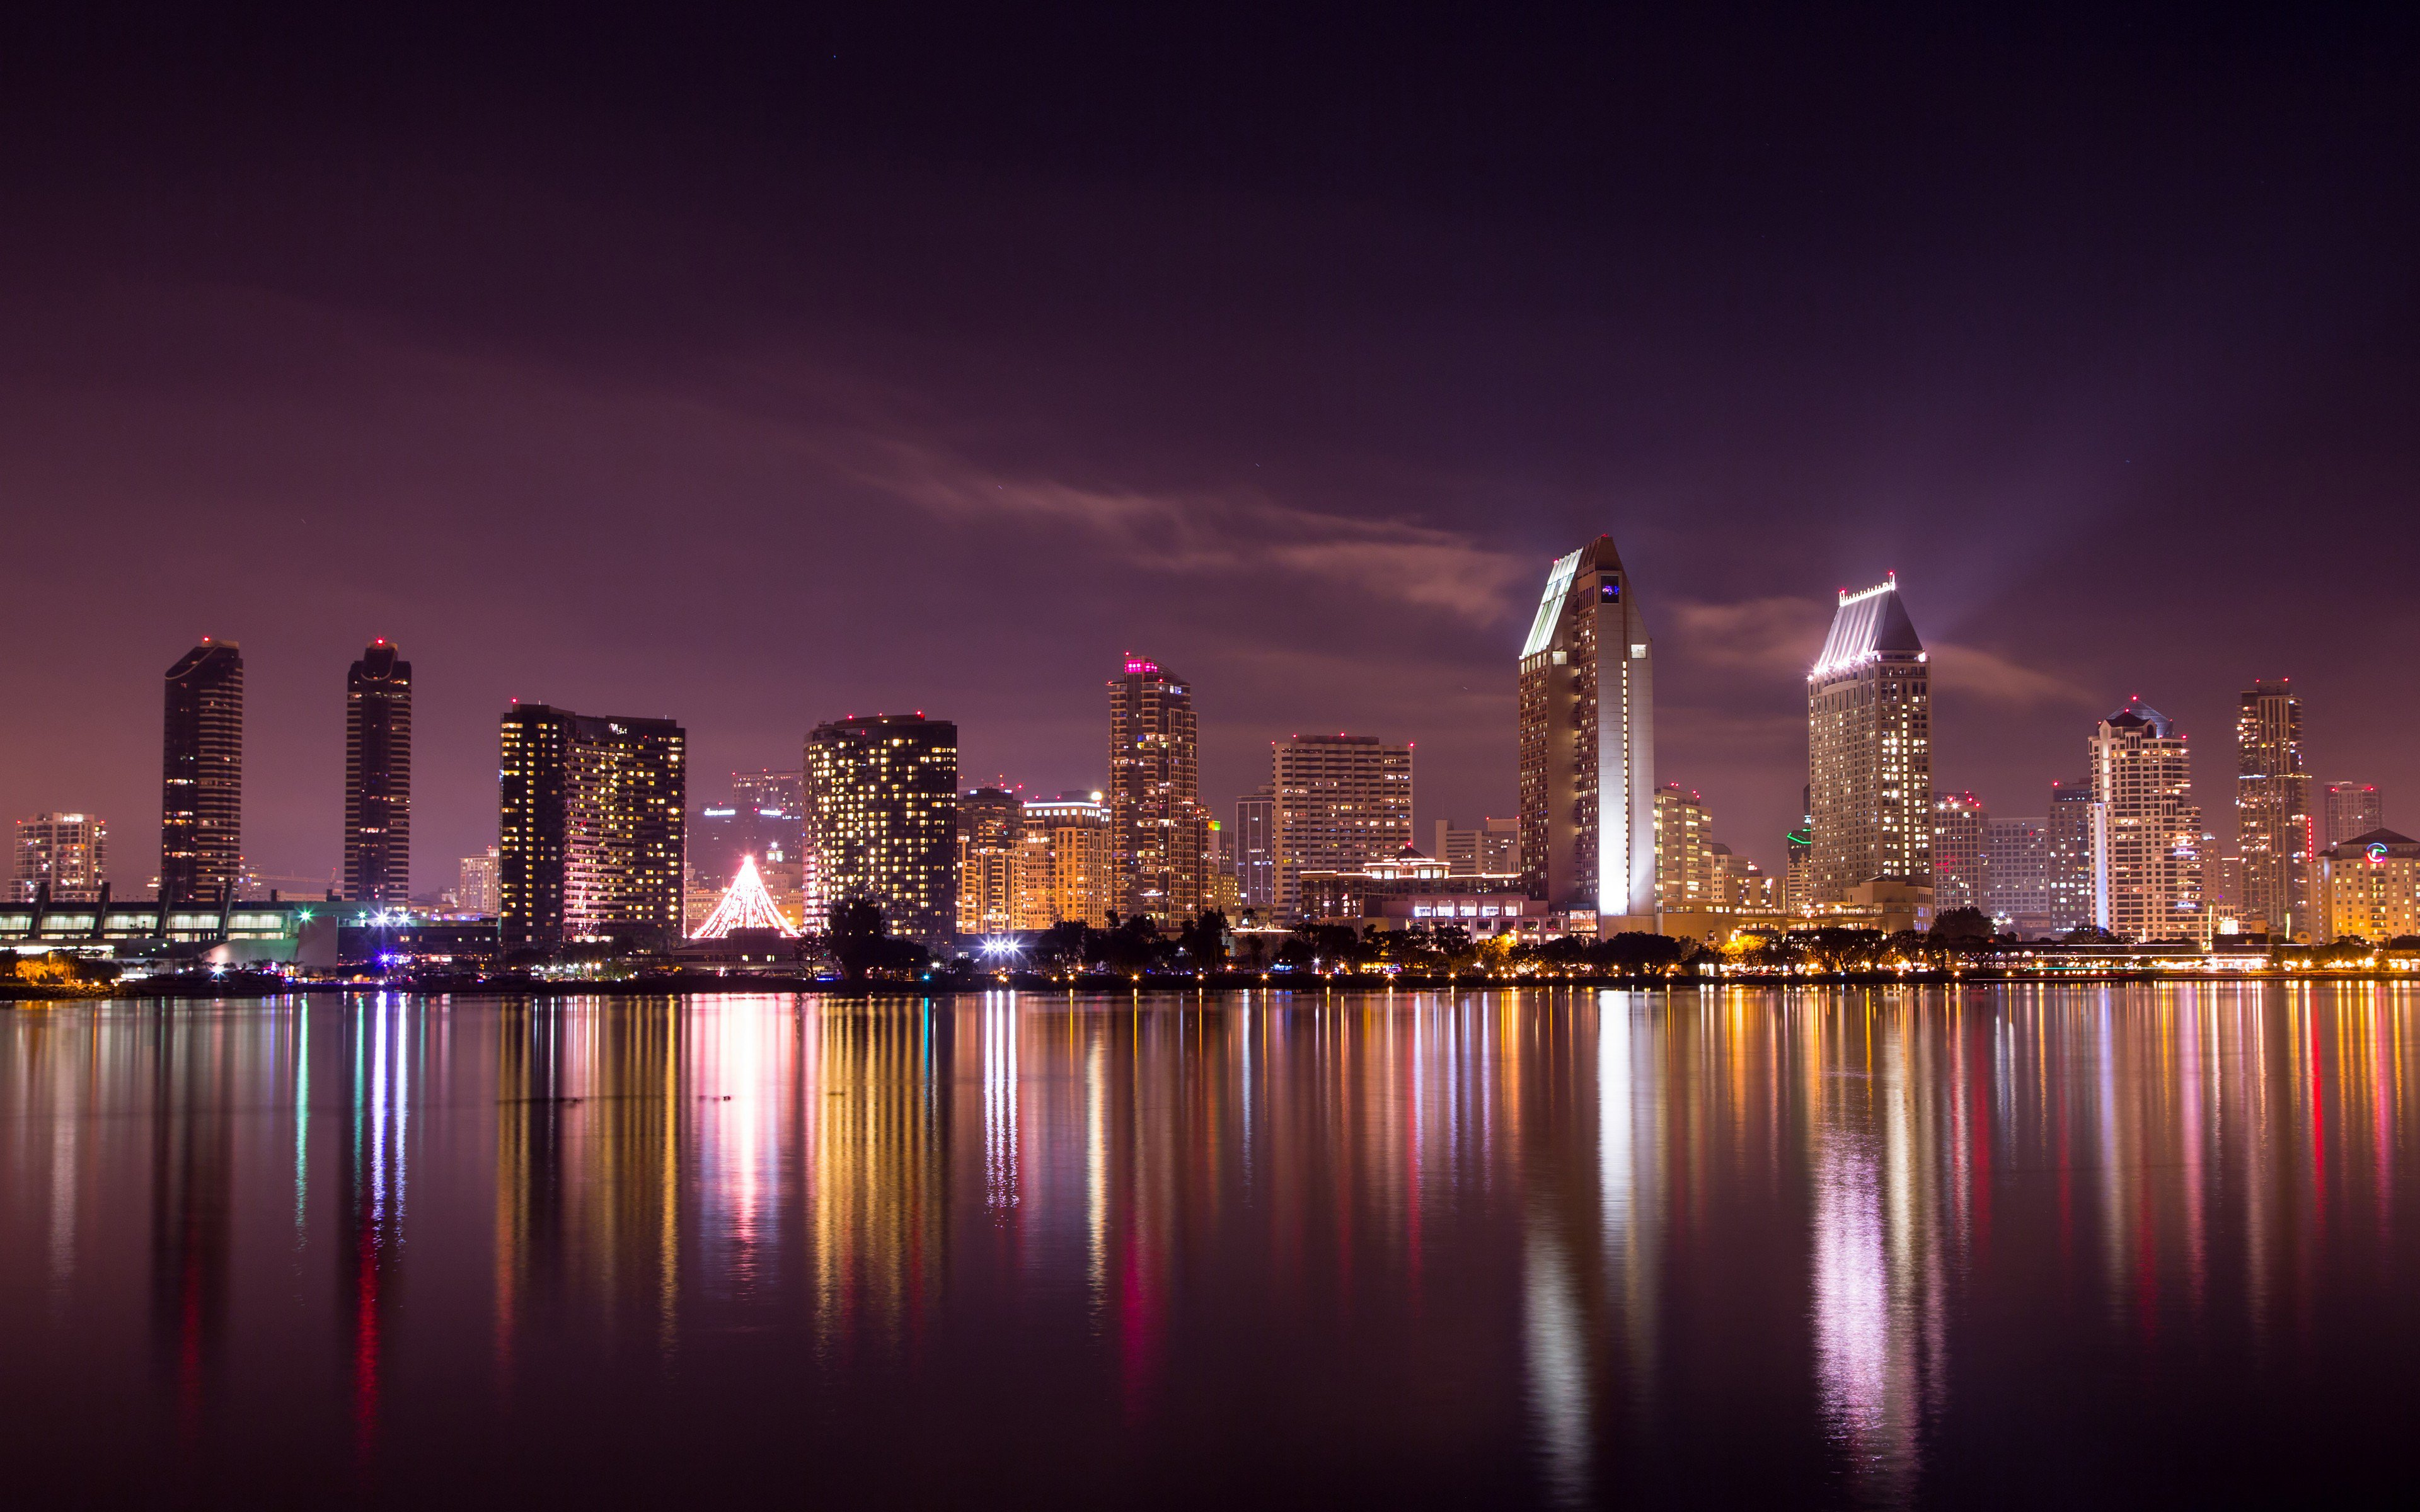 1440x900 San Diego Skyline 1440x900 Resolution Hd 4k Wallpapers Images Backgrounds Photos And Pictures